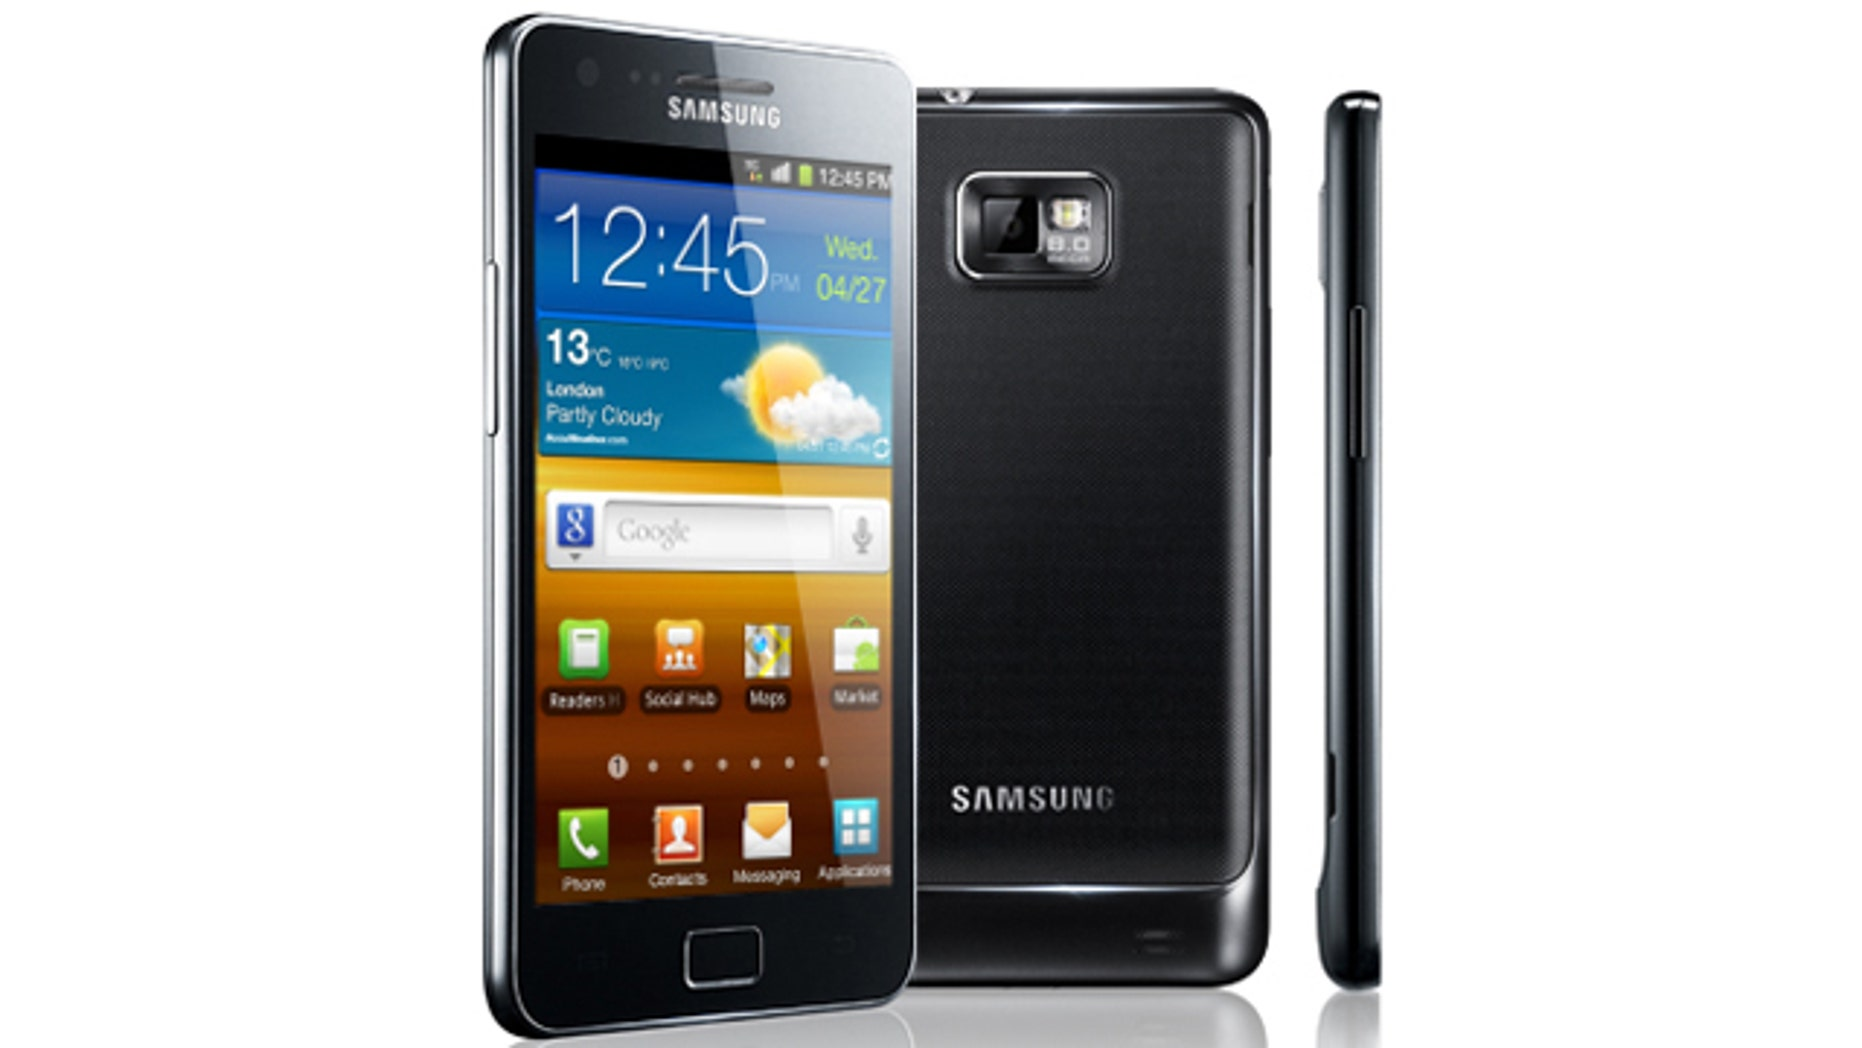 The Samsung Galaxy S II, possibly the biggest threat to the Apple iPhone's dominance of the smartphone market.